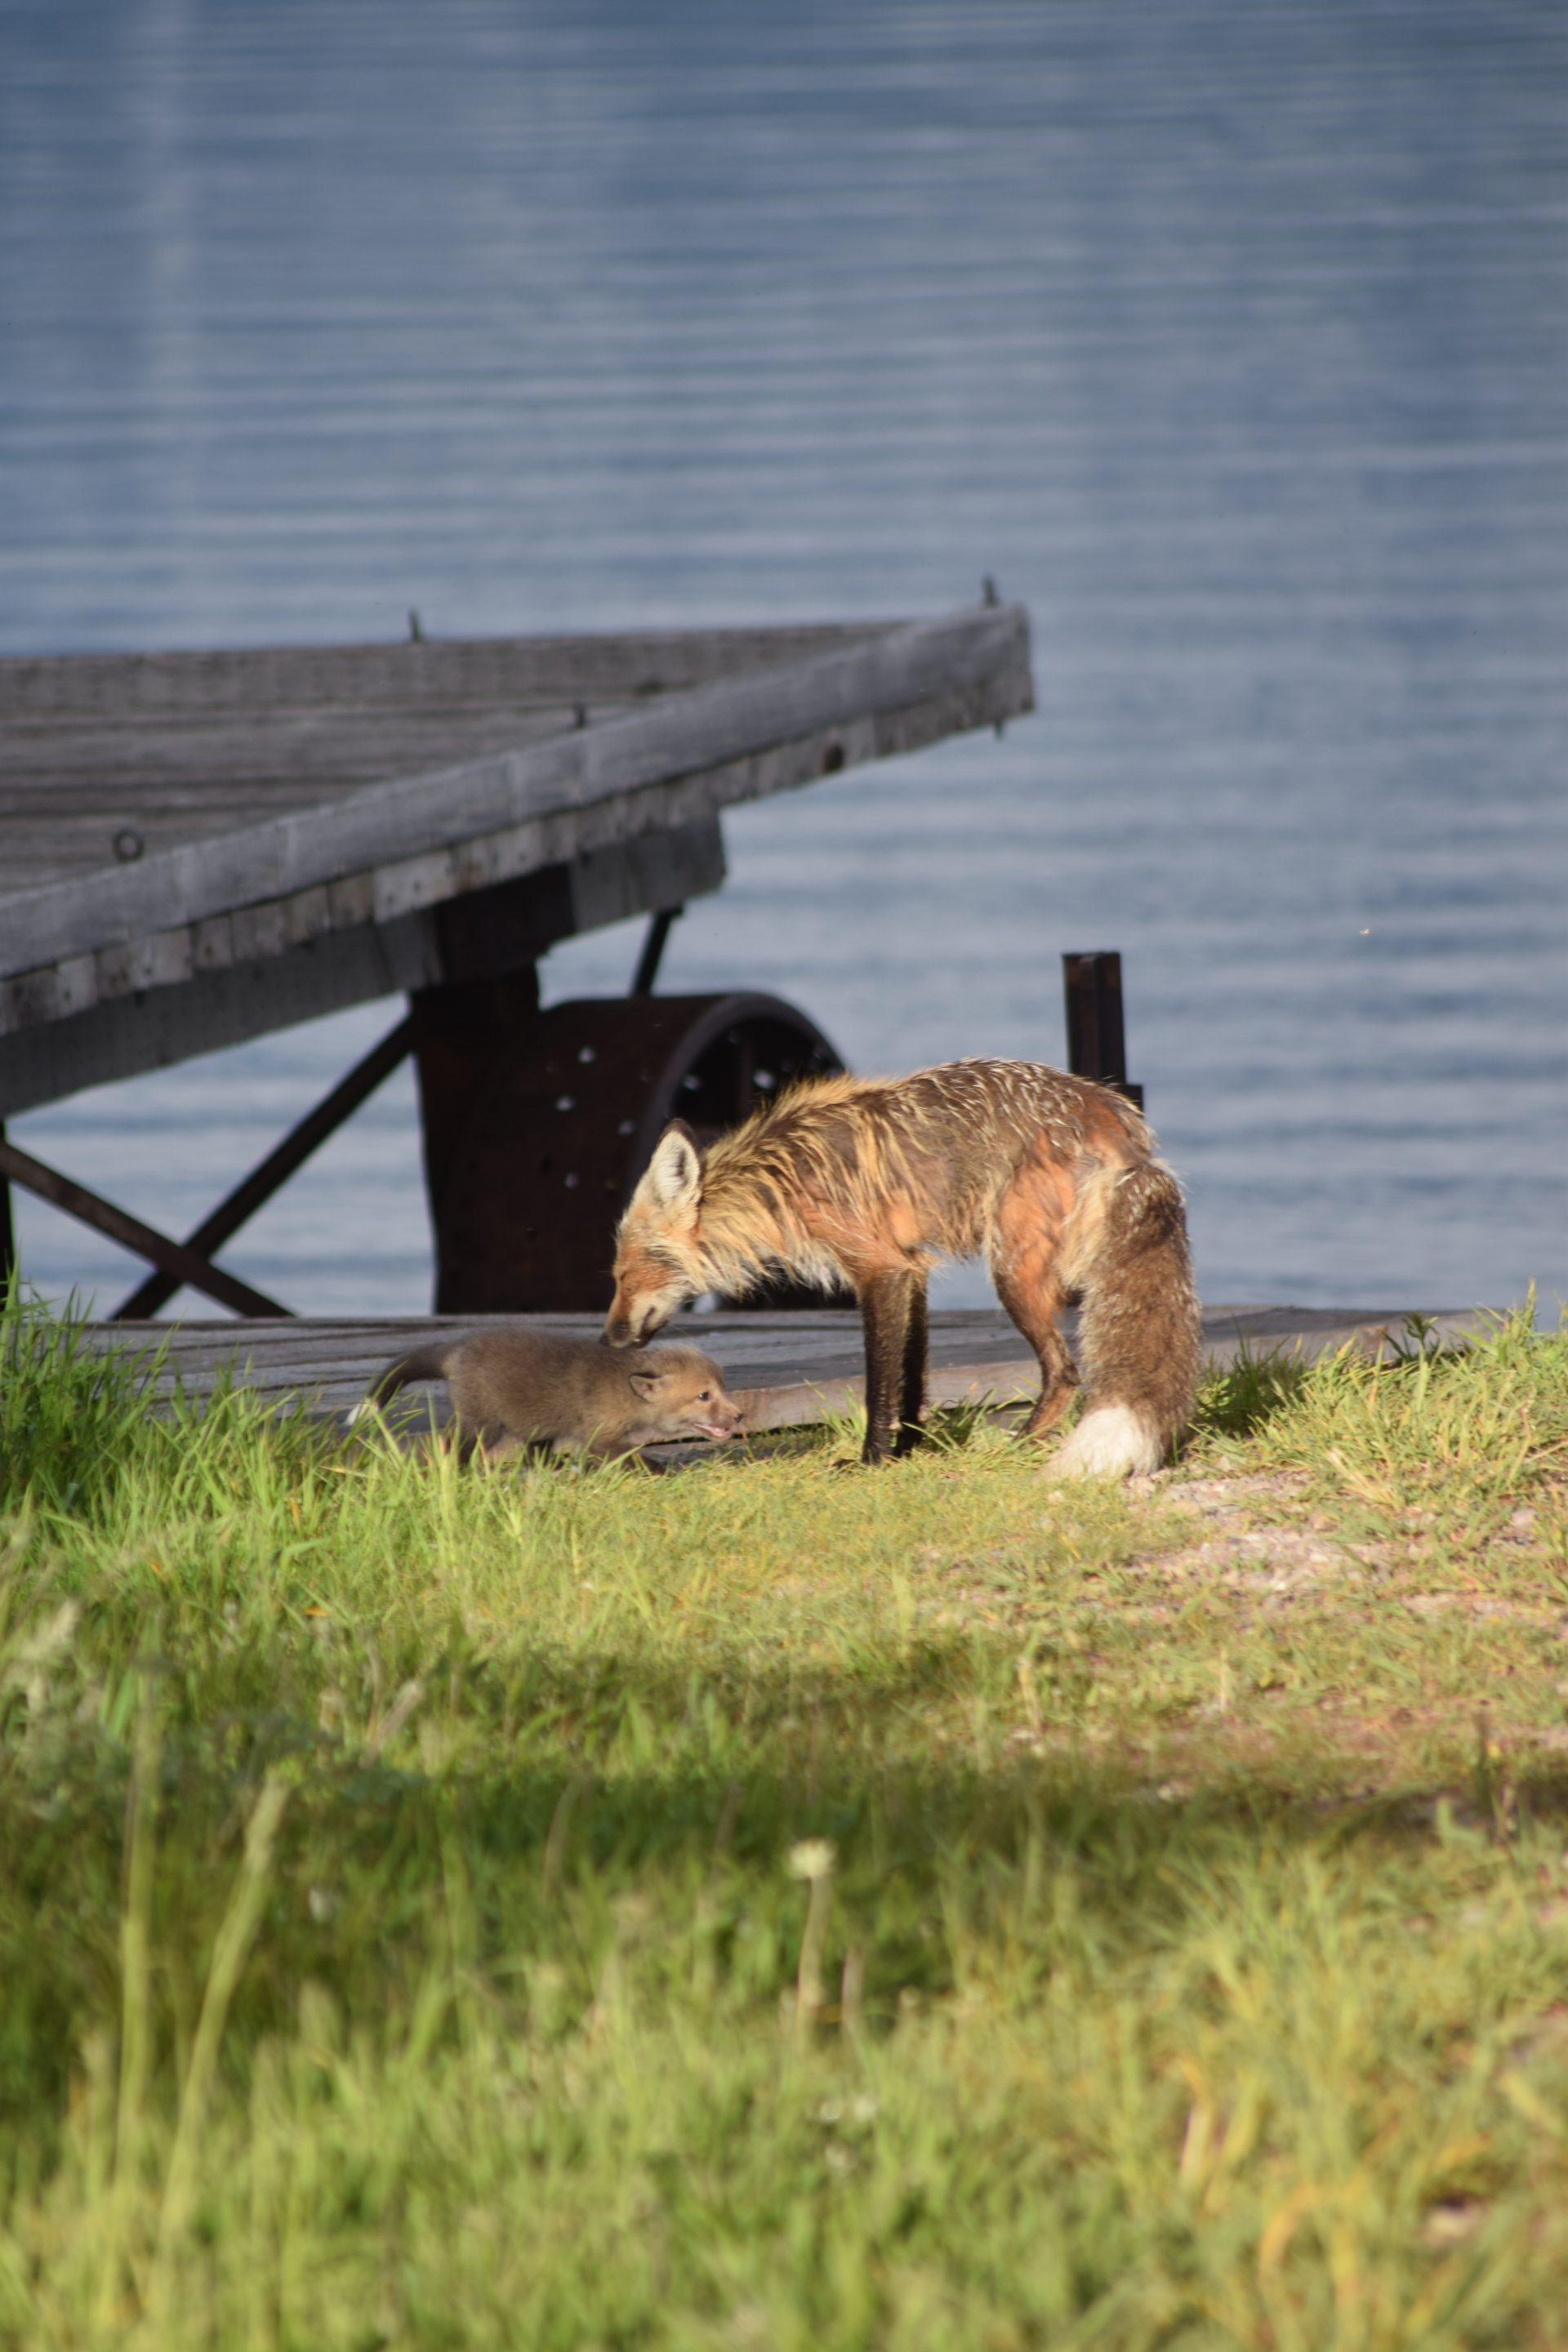 Adult fox and kit, grass, dock, lake behind